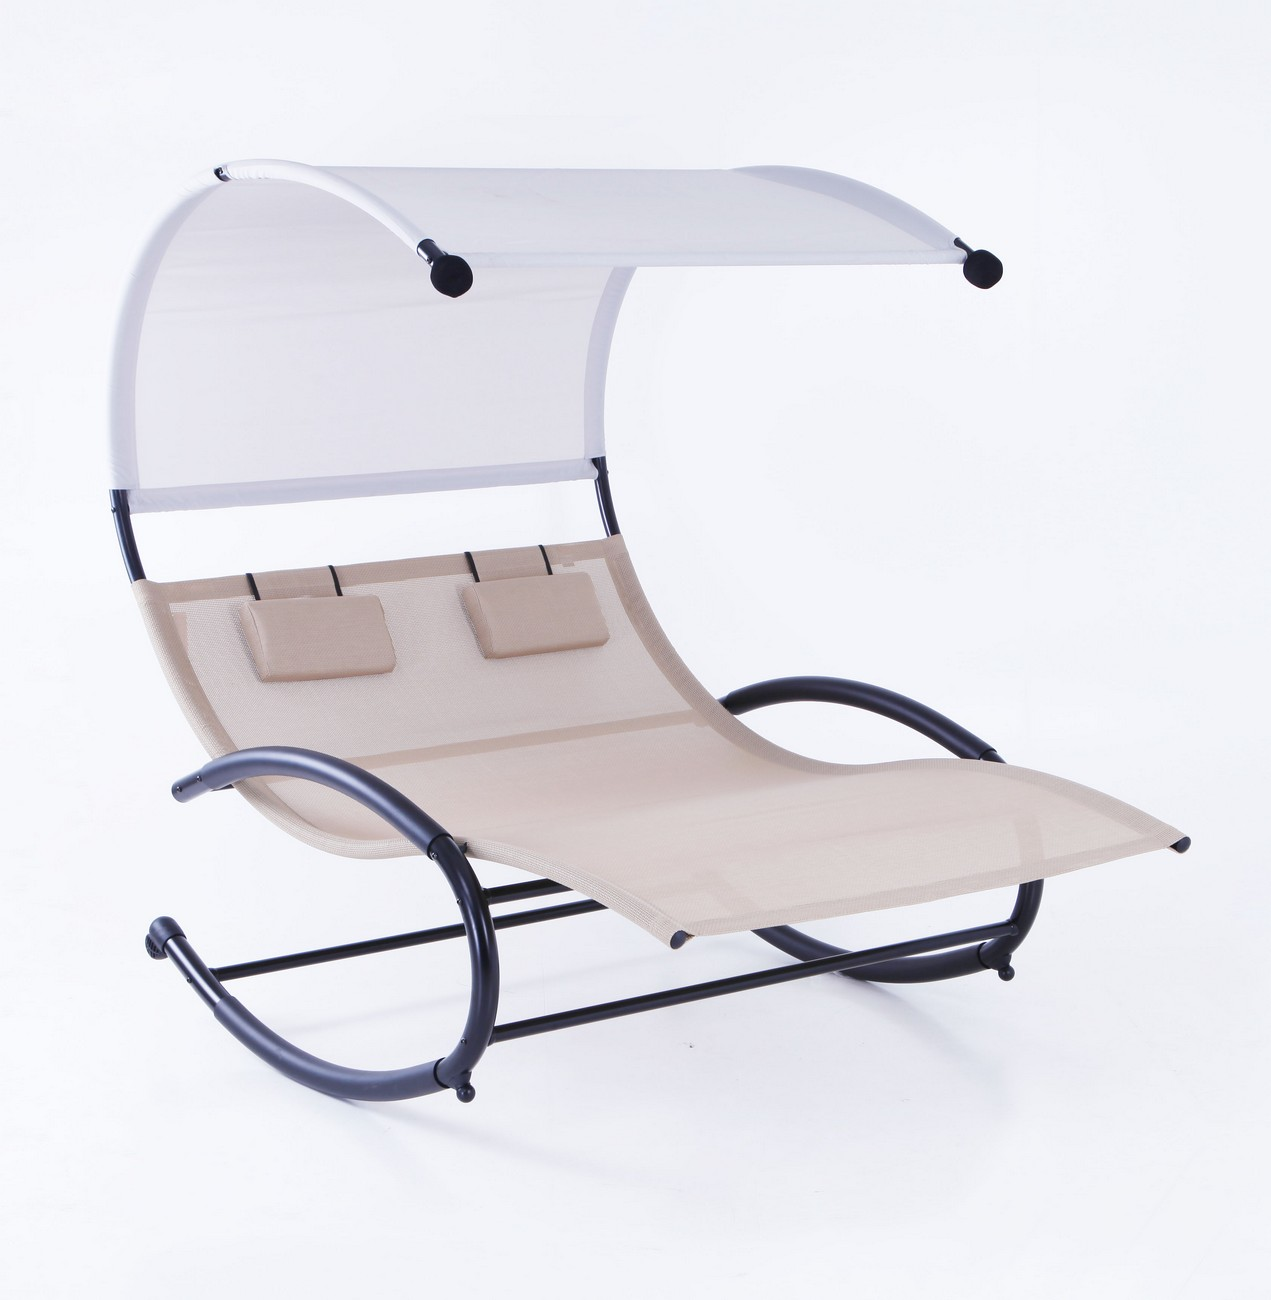 2 Person Chaise Rocker Patio Furniture Lounger Chair Bed